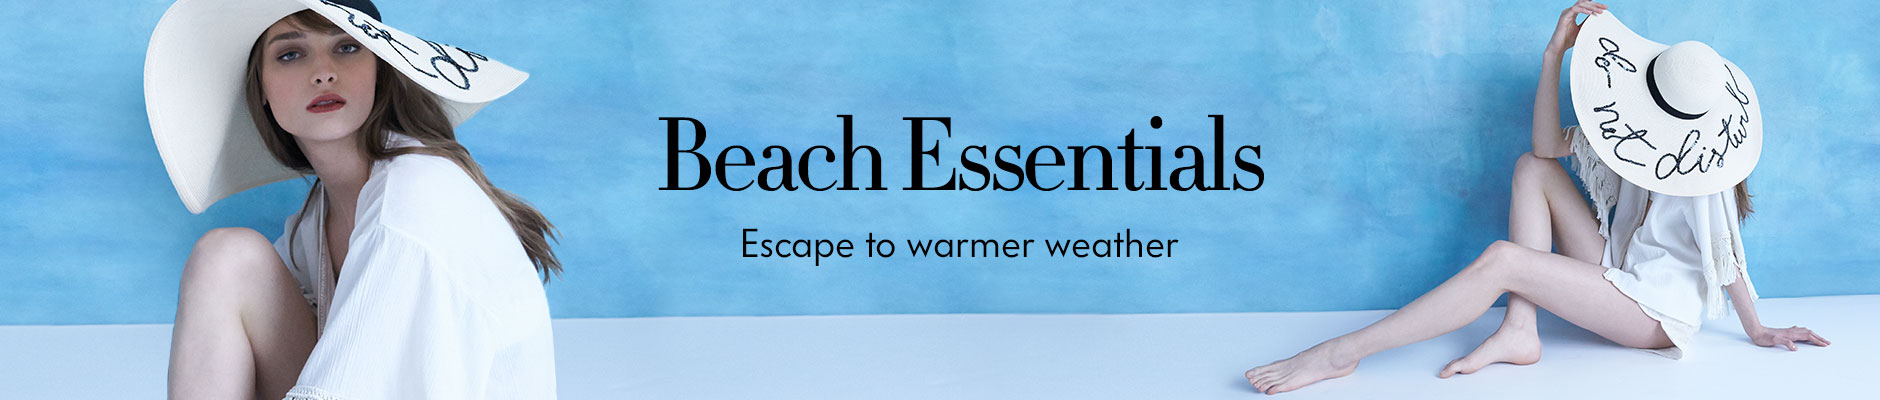 Beach Essentials - Escape to warmer weather